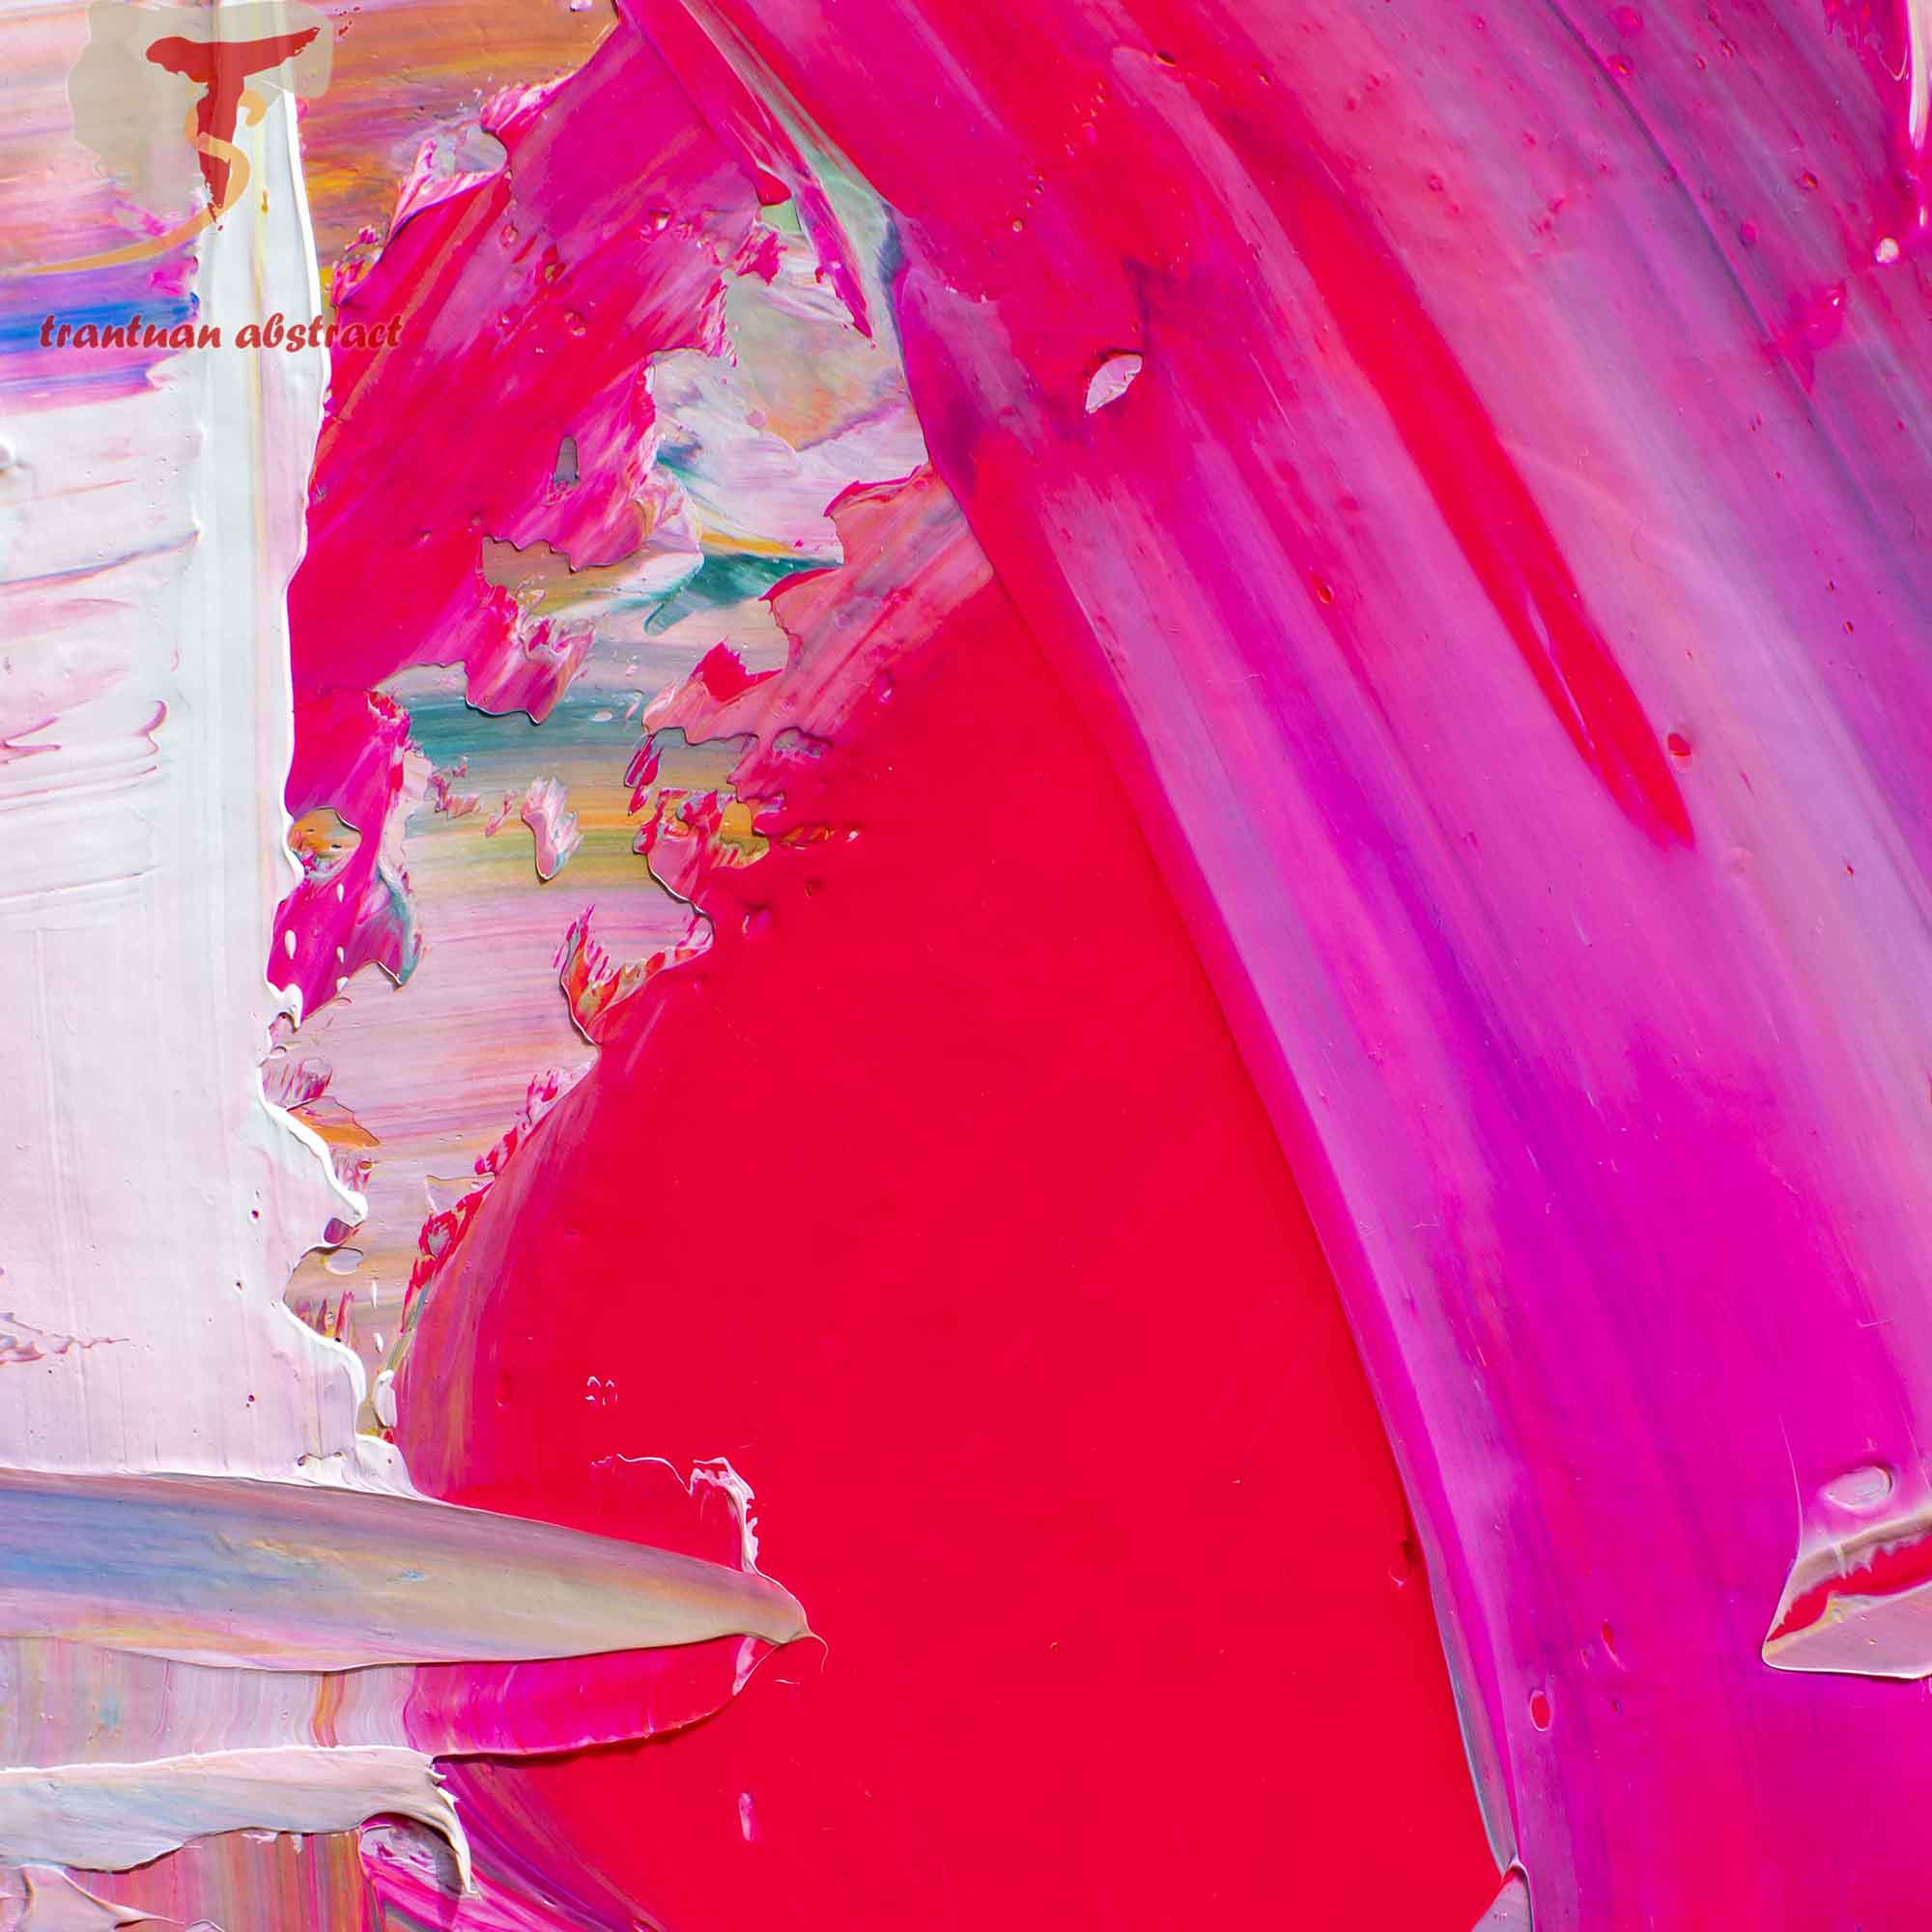 Tran Tuan Abstract Rose of Love 135 x 80 x 5 cm Acrylic on Canvas Painting Detail s (28)